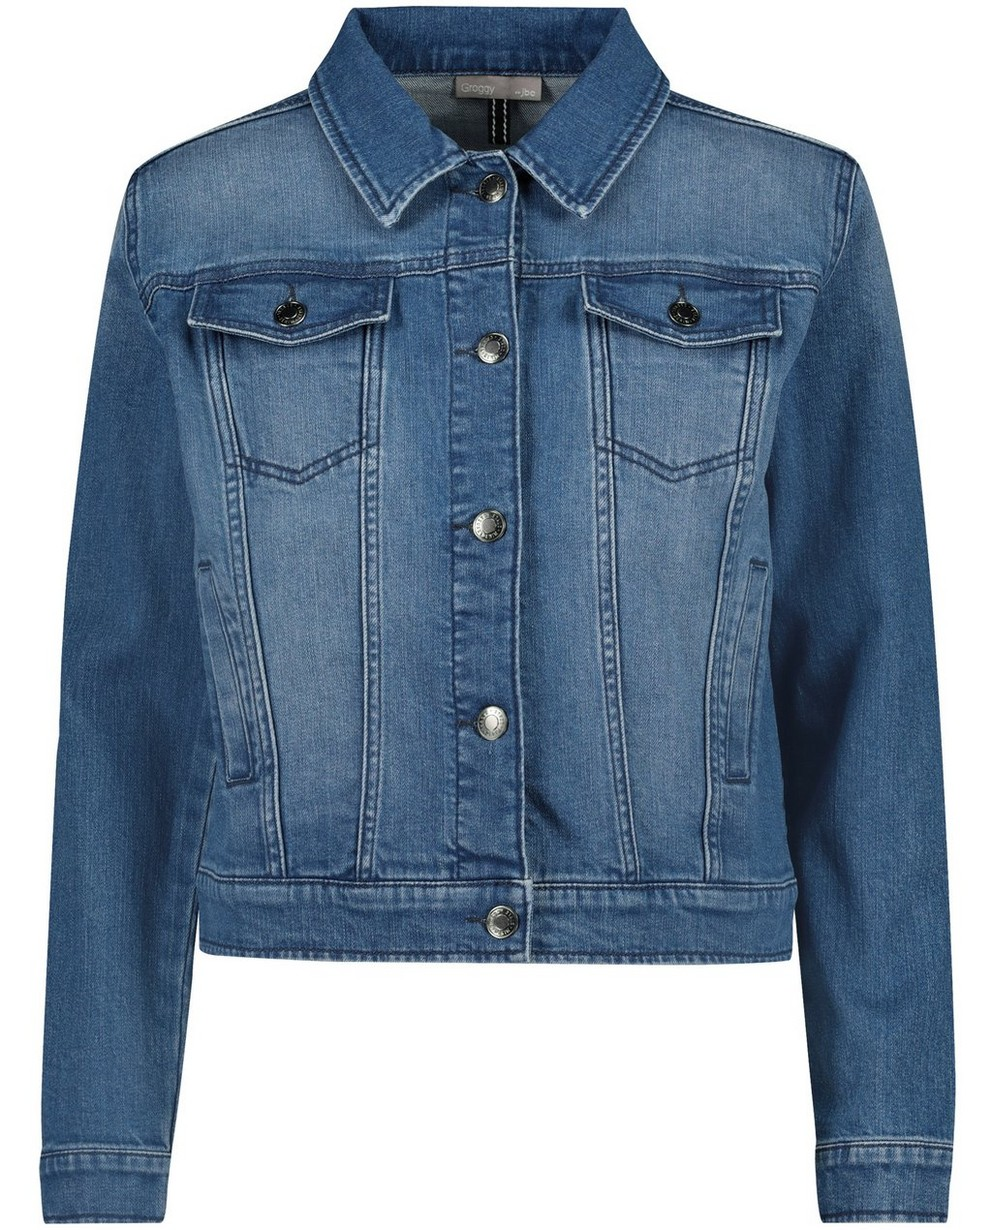 Veste en jeans - inscription au dos - JBC